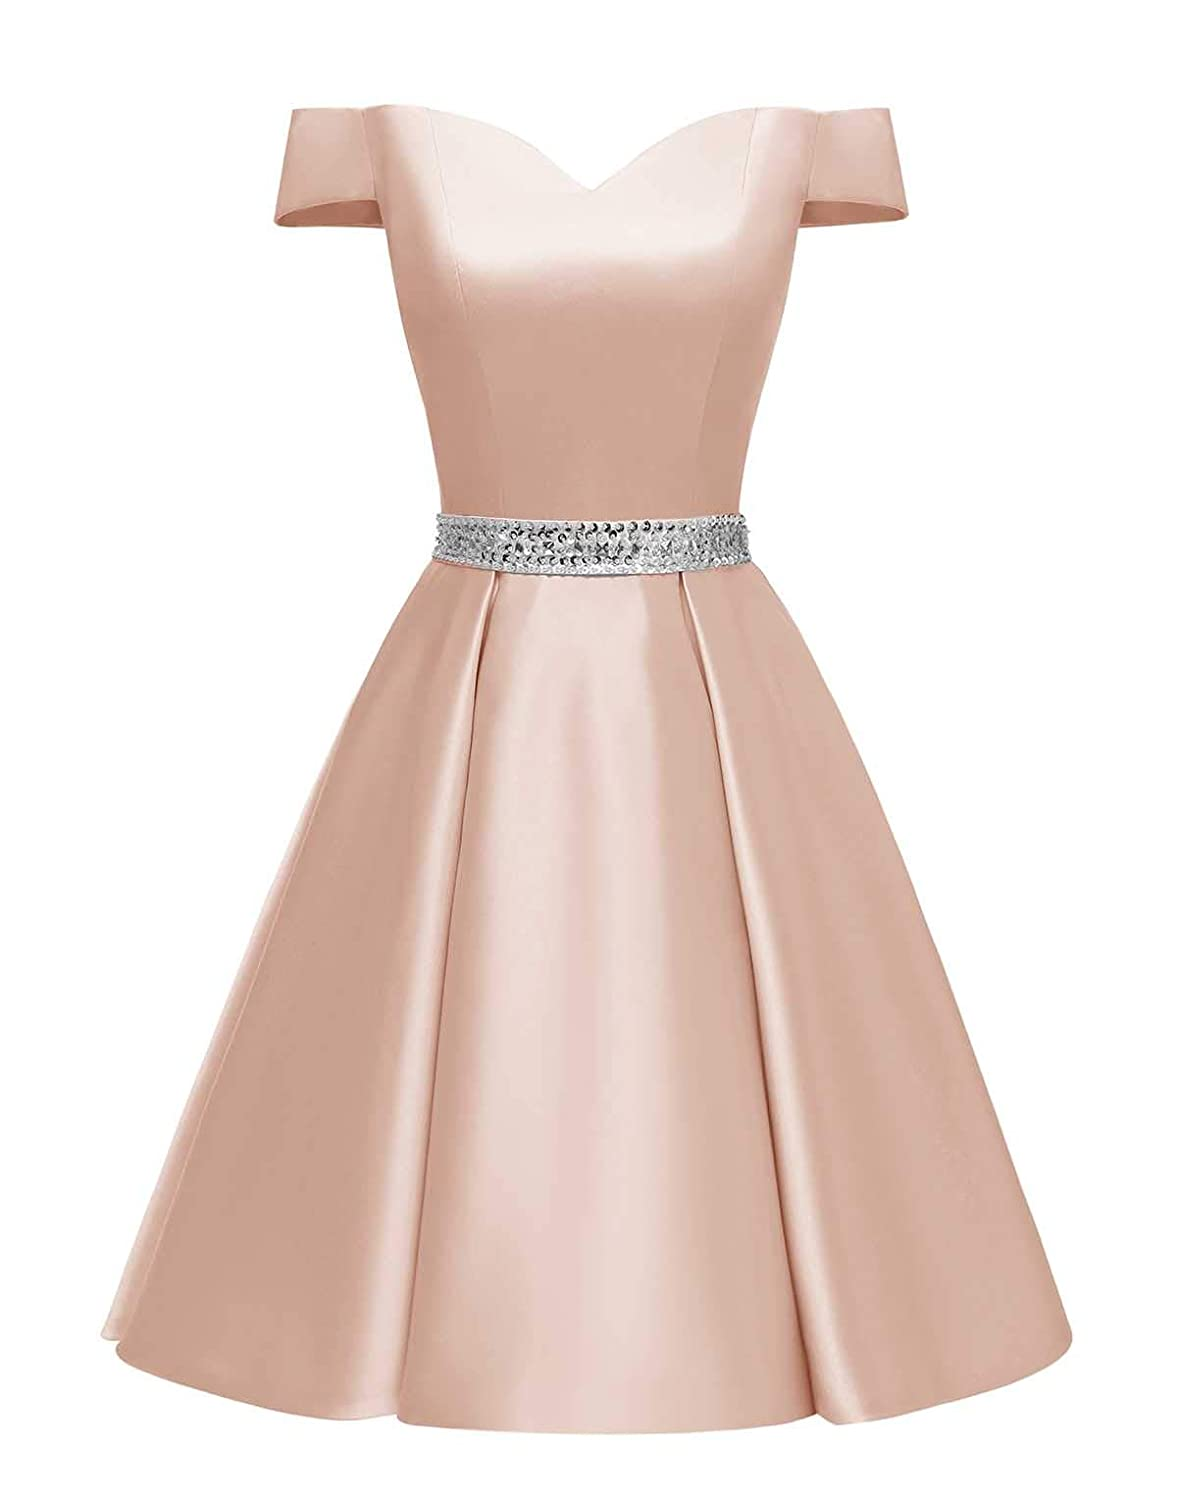 Changuan Women s Short Beaded Prom Dresses Off The Shoulder Backless Homecoming  Dress at Amazon Women s Clothing store  b713d9141